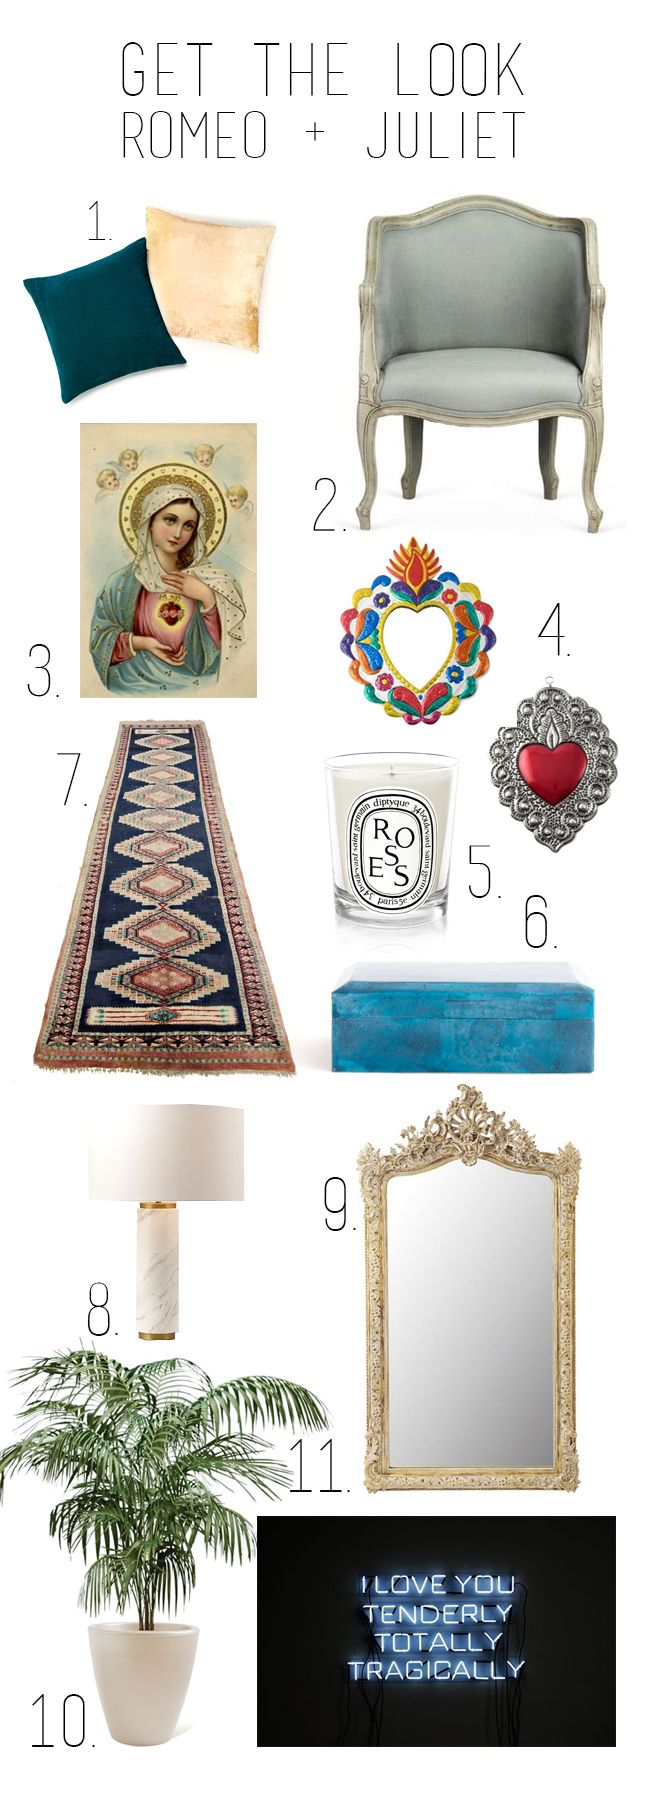 best ideas about baz luhrmann moulin rouge the get the look romeo juliet interior inspiration from baz luhrmann s 1996 masterpiece